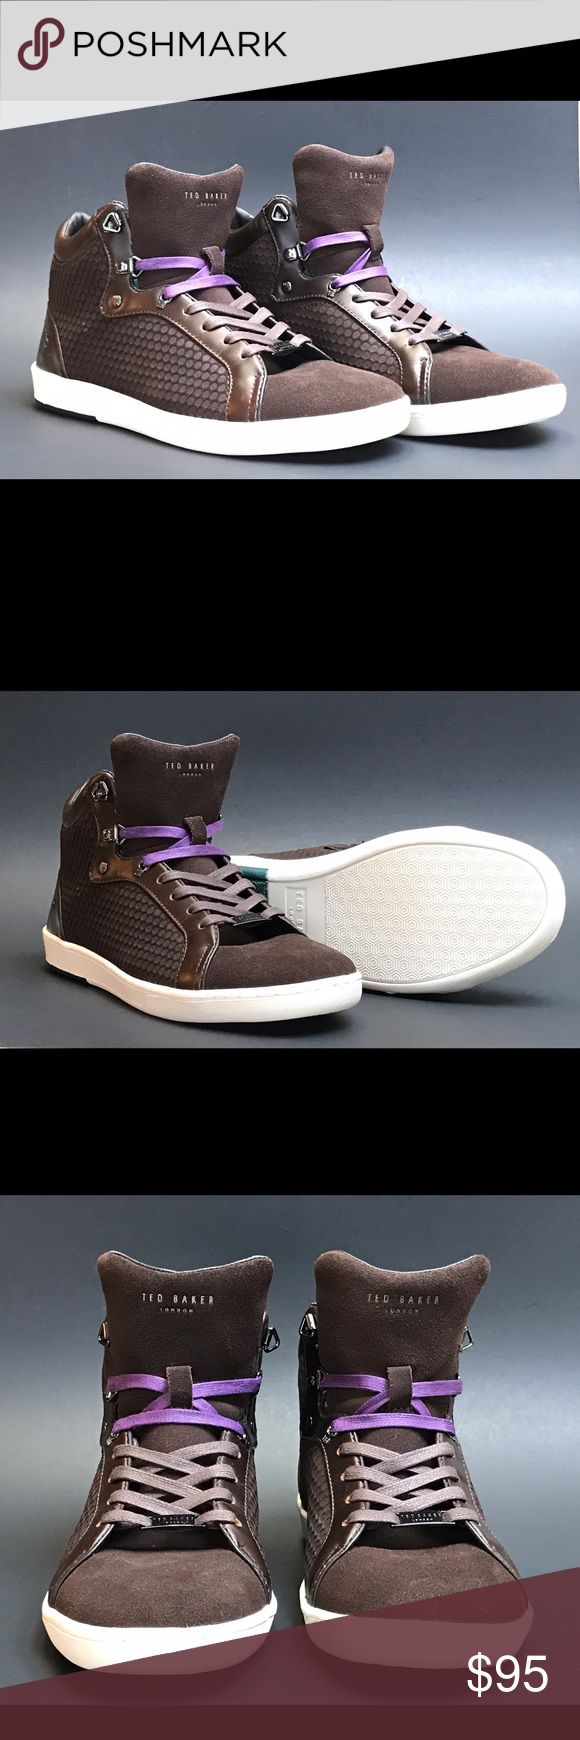 New Ted Baker Brown Suede Fashion Sneakers Alcaeus These are new Ted Baker Fashion Sneakers out of the box. Size: 9. Have not been worn, and tags were taken off for a display. Gorgeous sneakers. They come with 2 different color laces, a brown lace and a purple. You can interchange or use both. Great condition as you can see from photos. Ted Baker London Shoes Sneakers